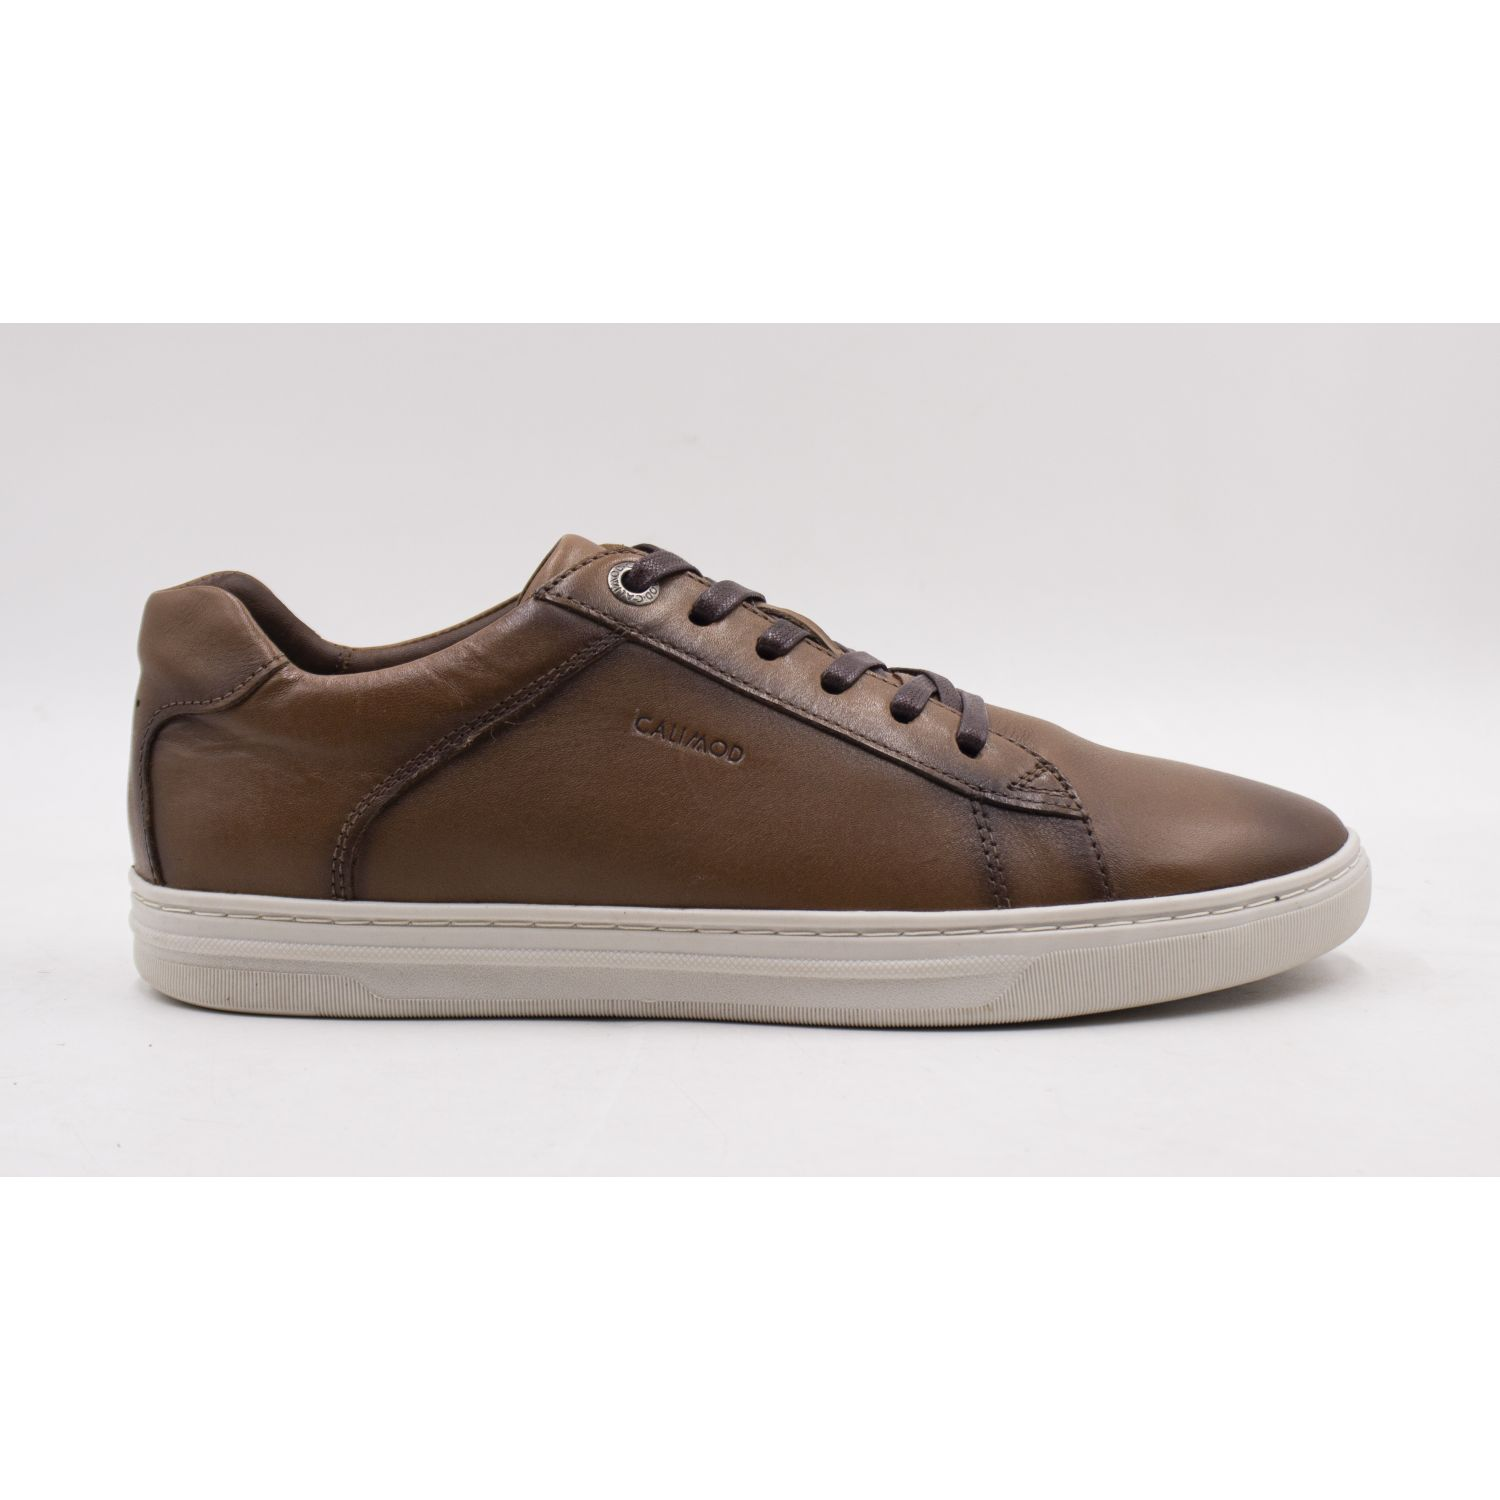 Calimod ZAPATILLA - BAJO Whisky Zapatillas Fashion